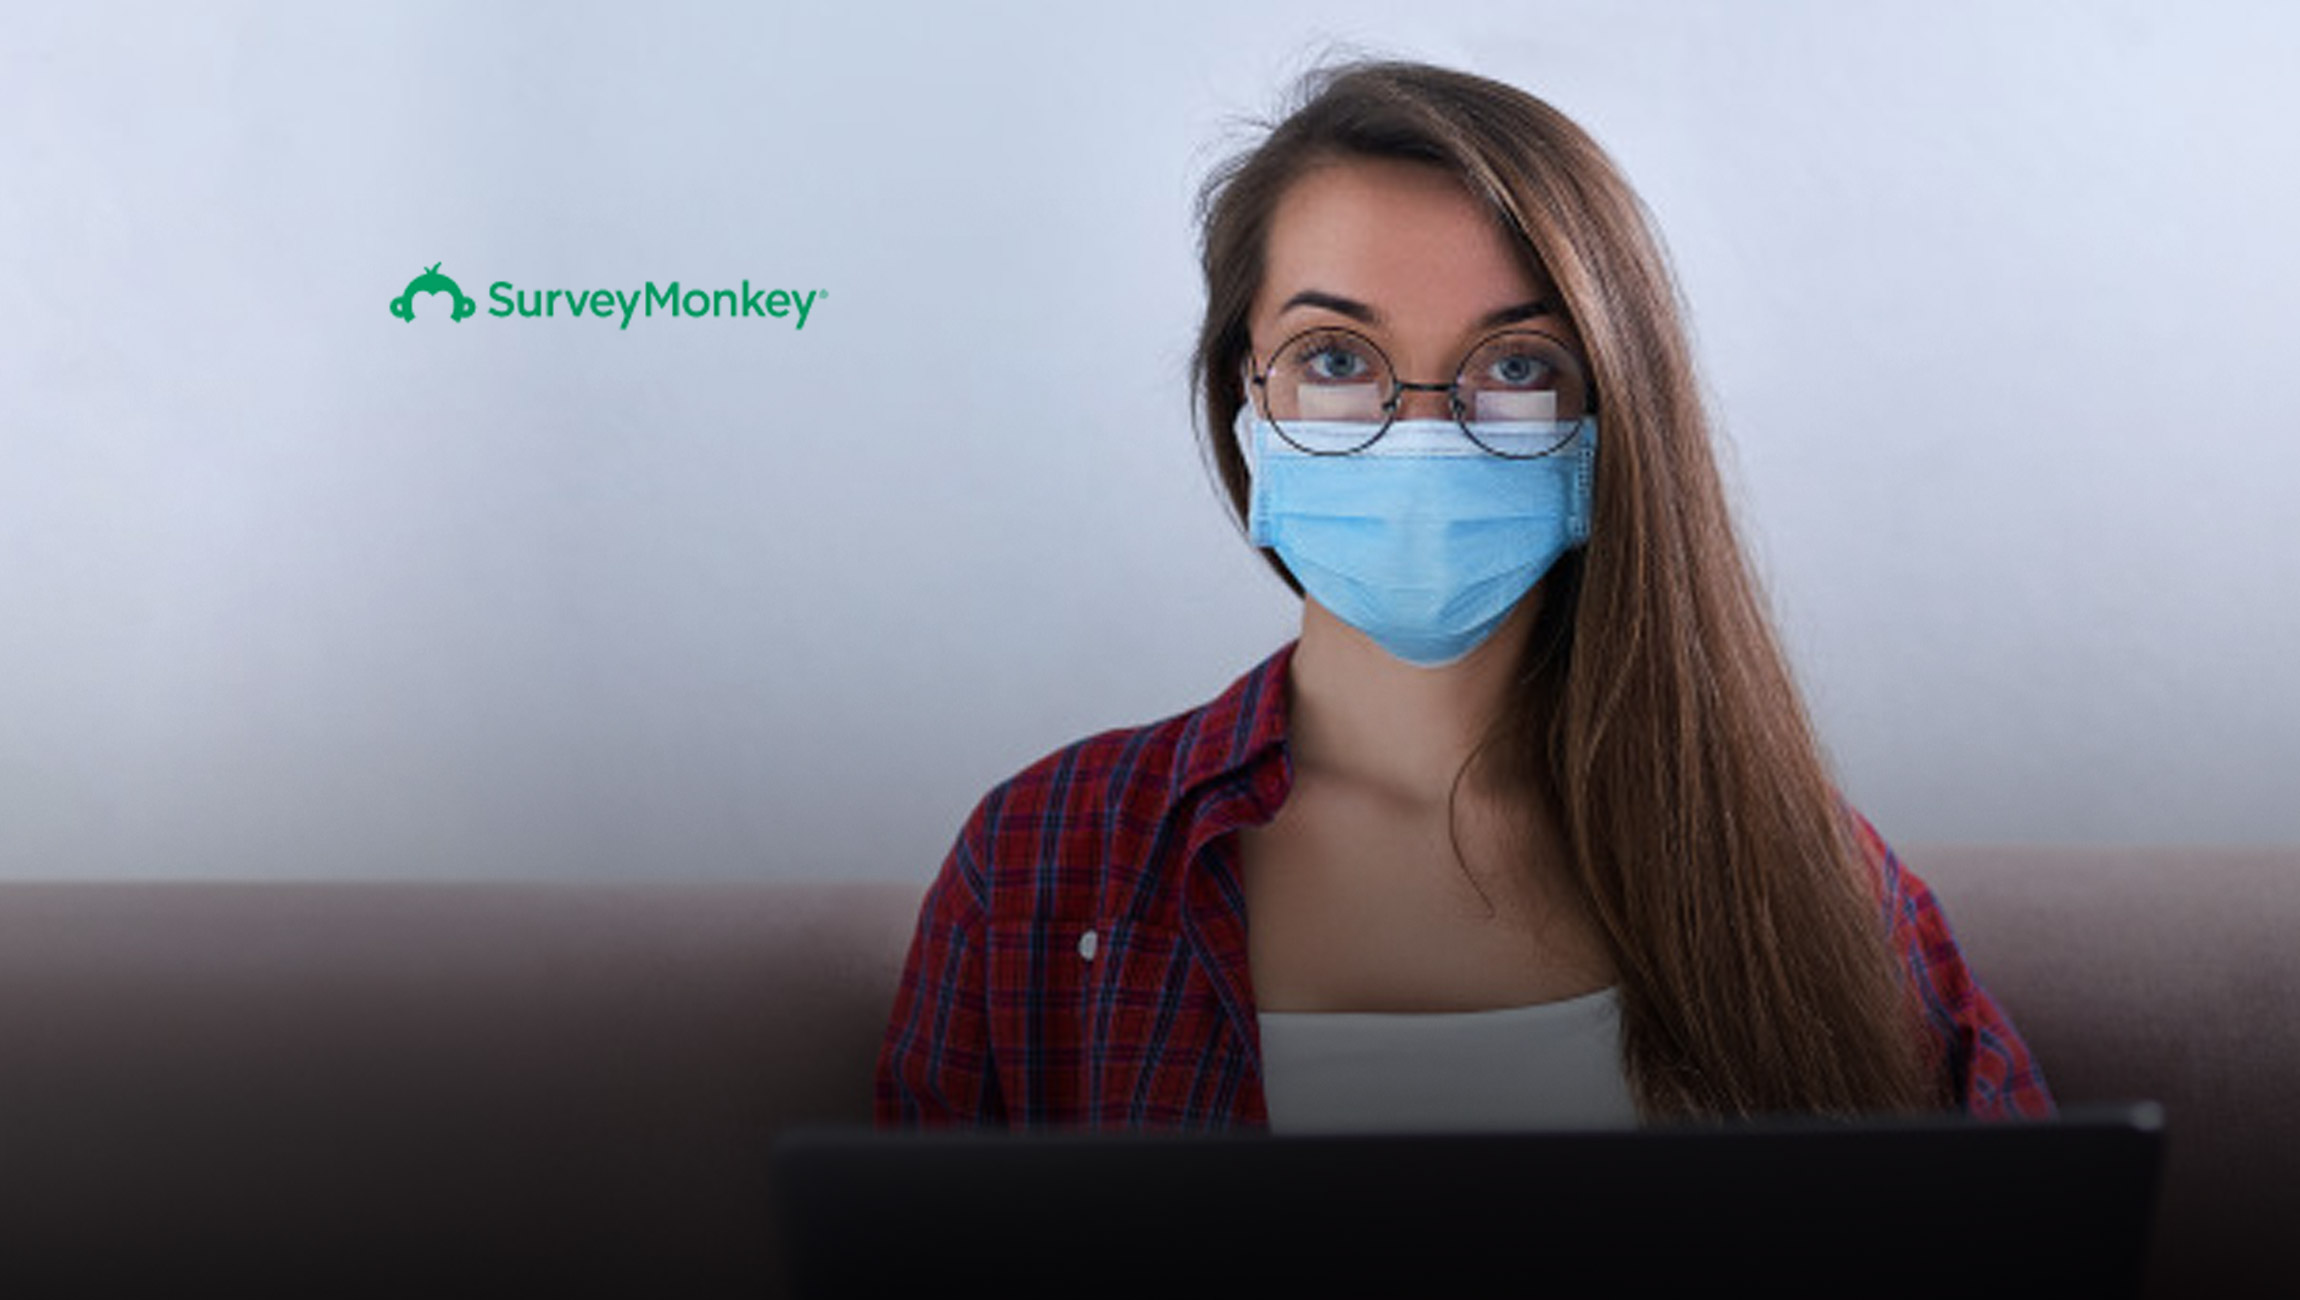 SurveyMonkey's New Report Shows How Agility and Curiosity Are Two Crucial Characteristics Found In Businesses Best Positioned To Survive the Pandemic